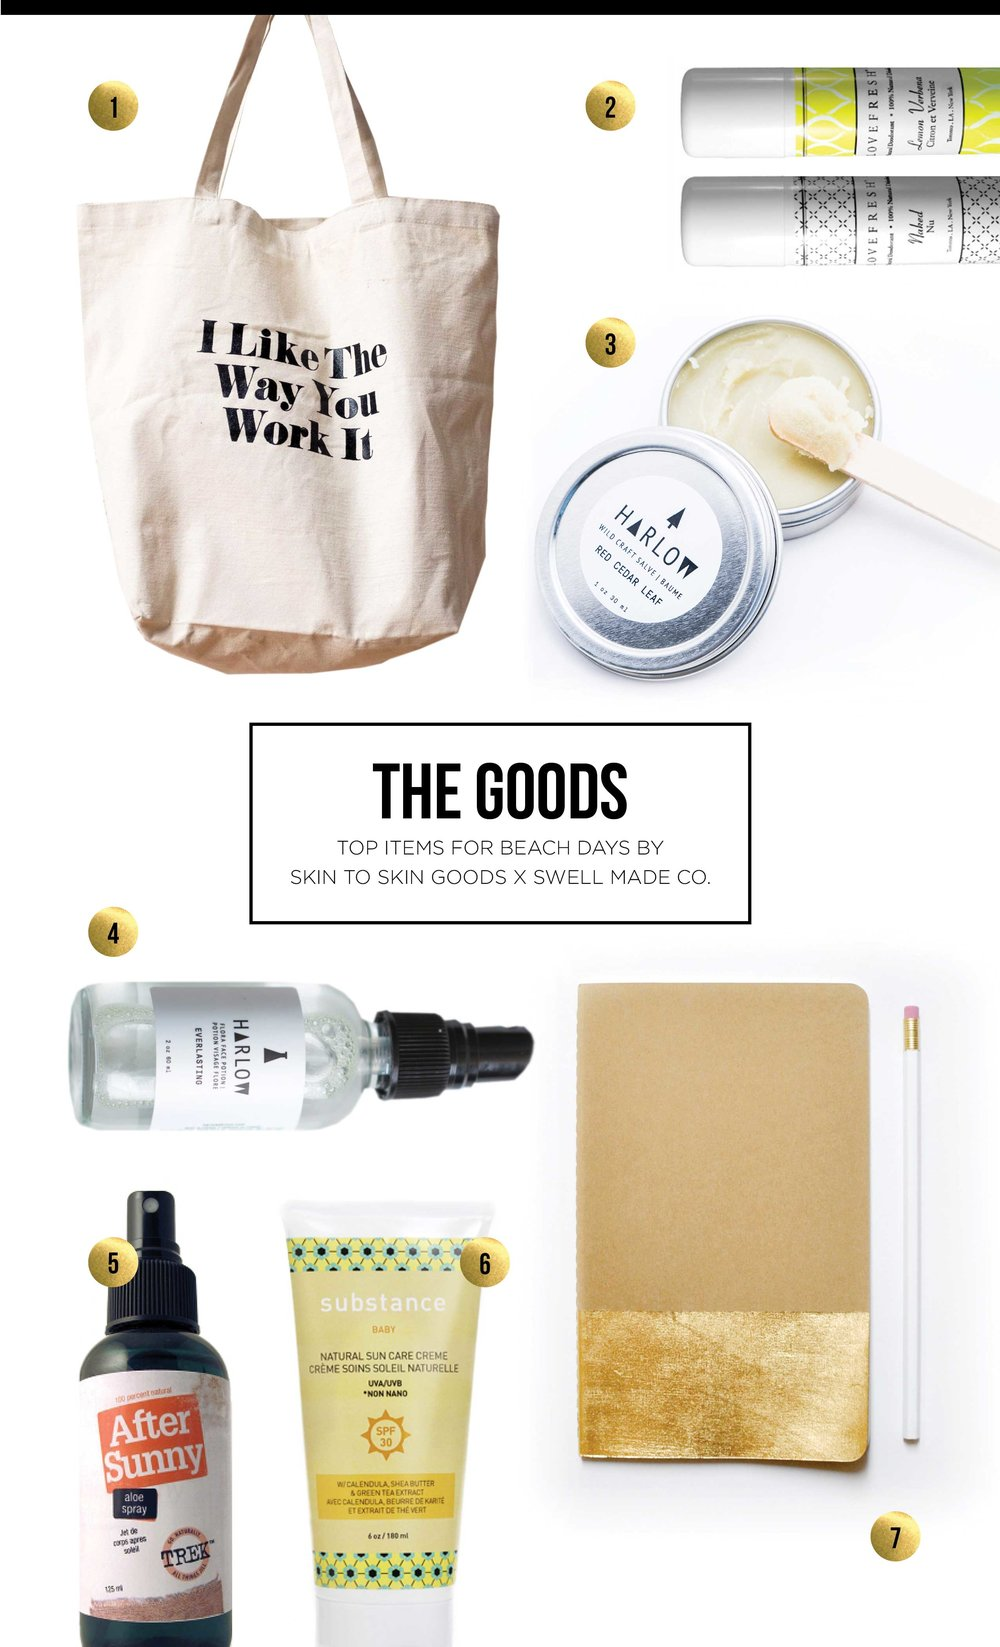 LOVE IT - Top items for beach days by Skin to Skin Goods and Swell Made Co.